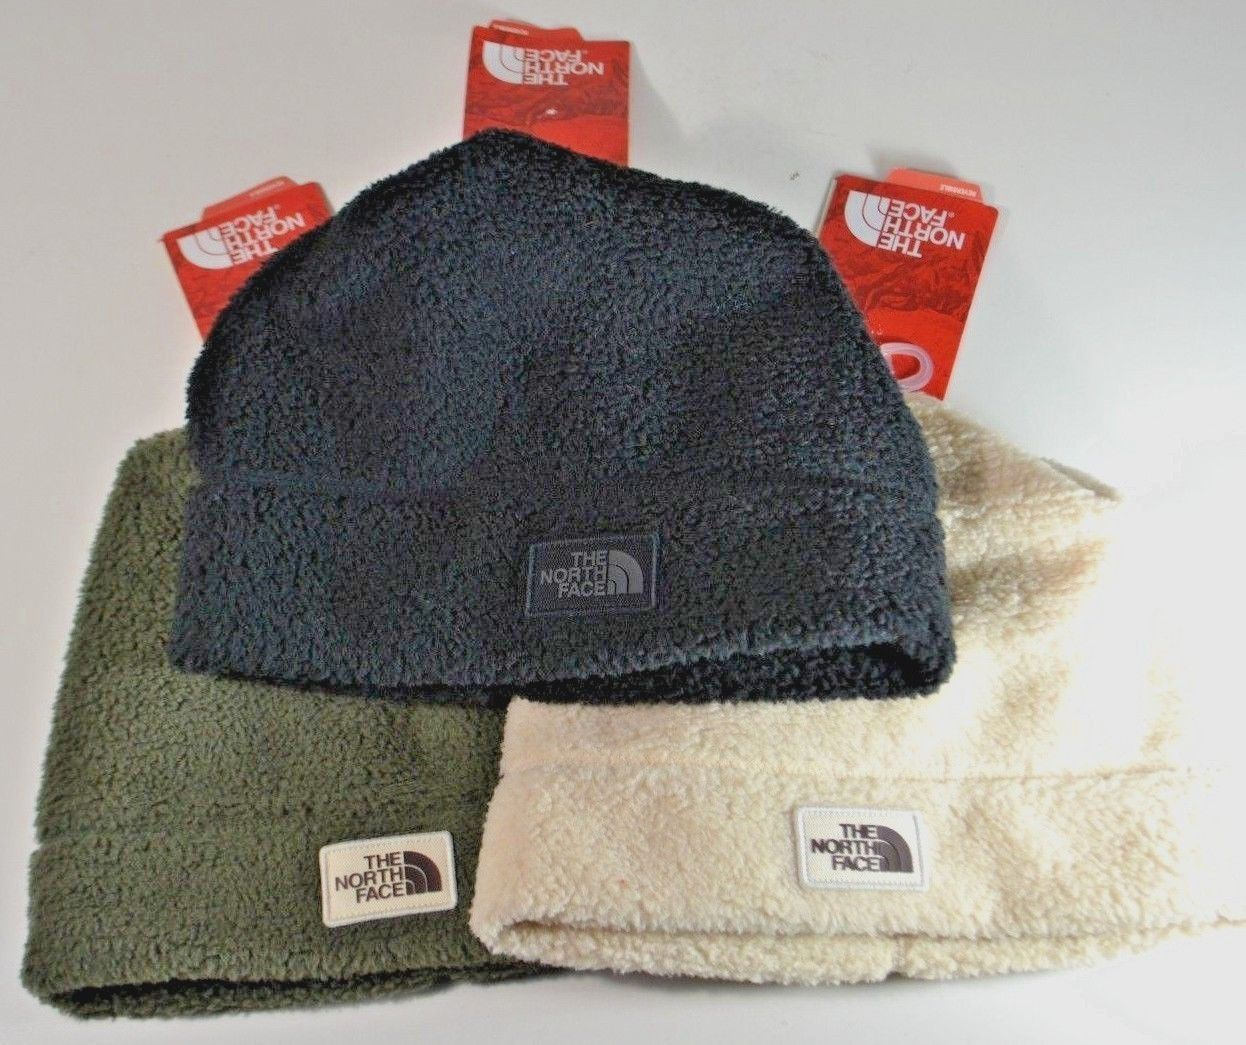 23c74b8173c Hats 163543  Nwt The North Face Mtn Culture Sherpa Beanie Hat One Size 3  Colors -  BUY IT NOW ONLY   14.99 on  eBay  north  culture  sherpa  beanie   colors